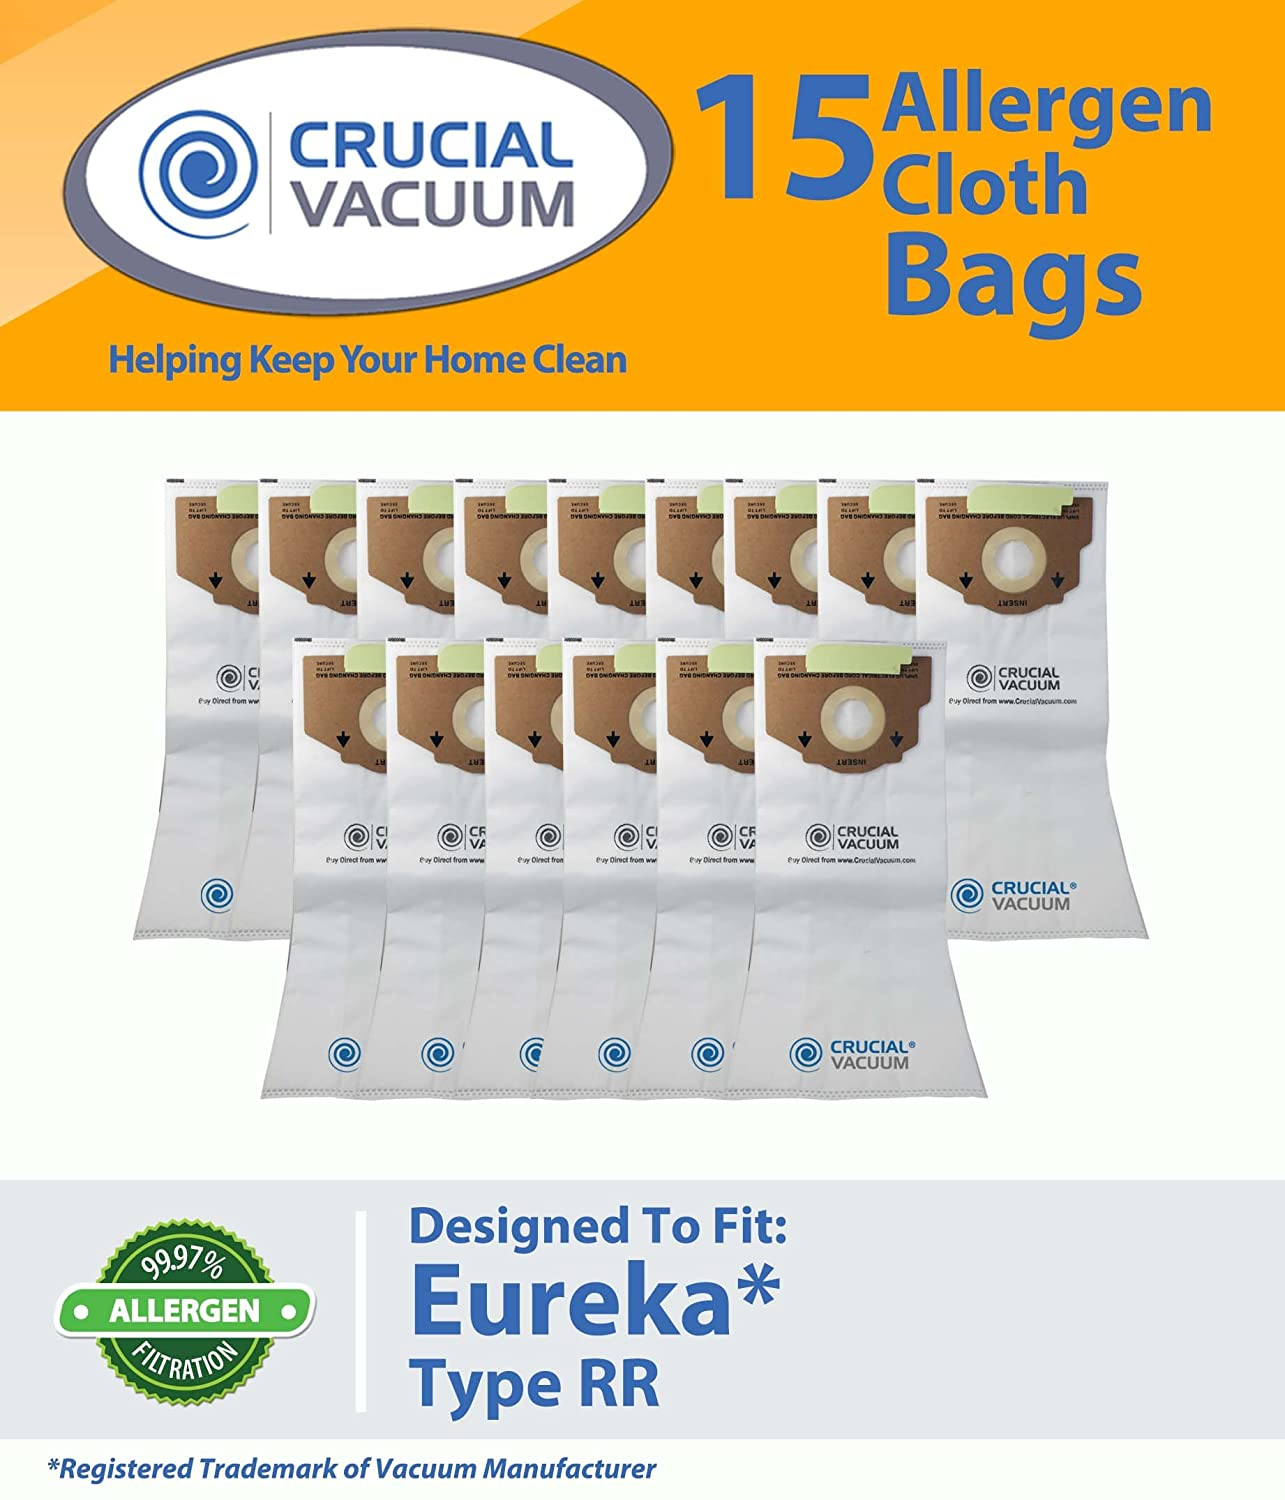 Crucial Vacuum Eureka Style RR Allergen Cloth (15 Pack) Bags Fits Eureka 4800 Series, Part # 61115, 61115A, 61115B, 63295A at Sears.com